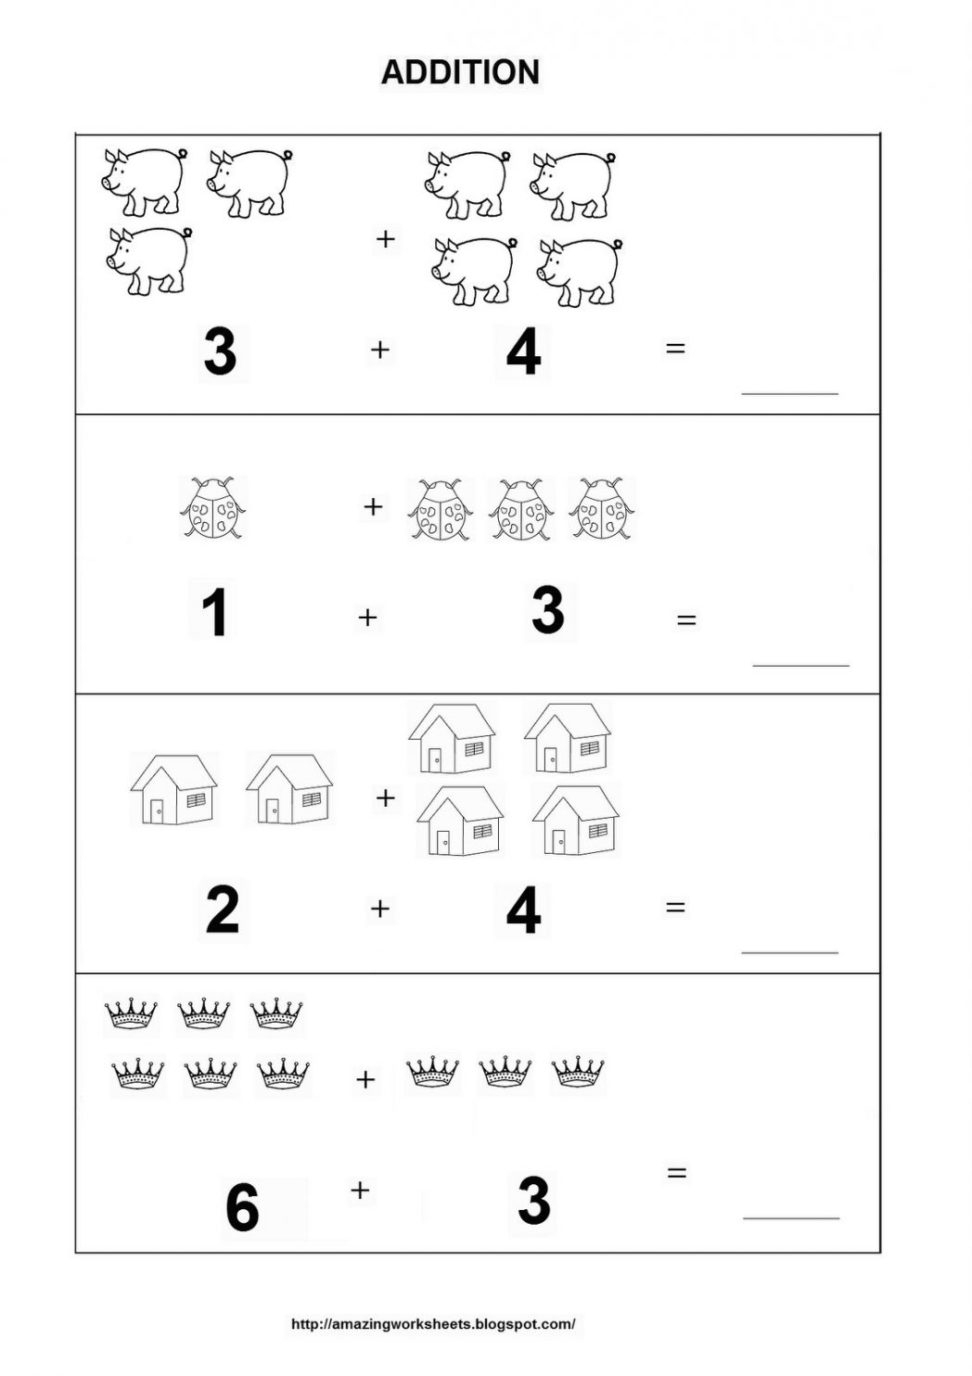 Receptions Worksheets Pretty Worksheet Free Printable Picture - Free Printable Worksheets Uk